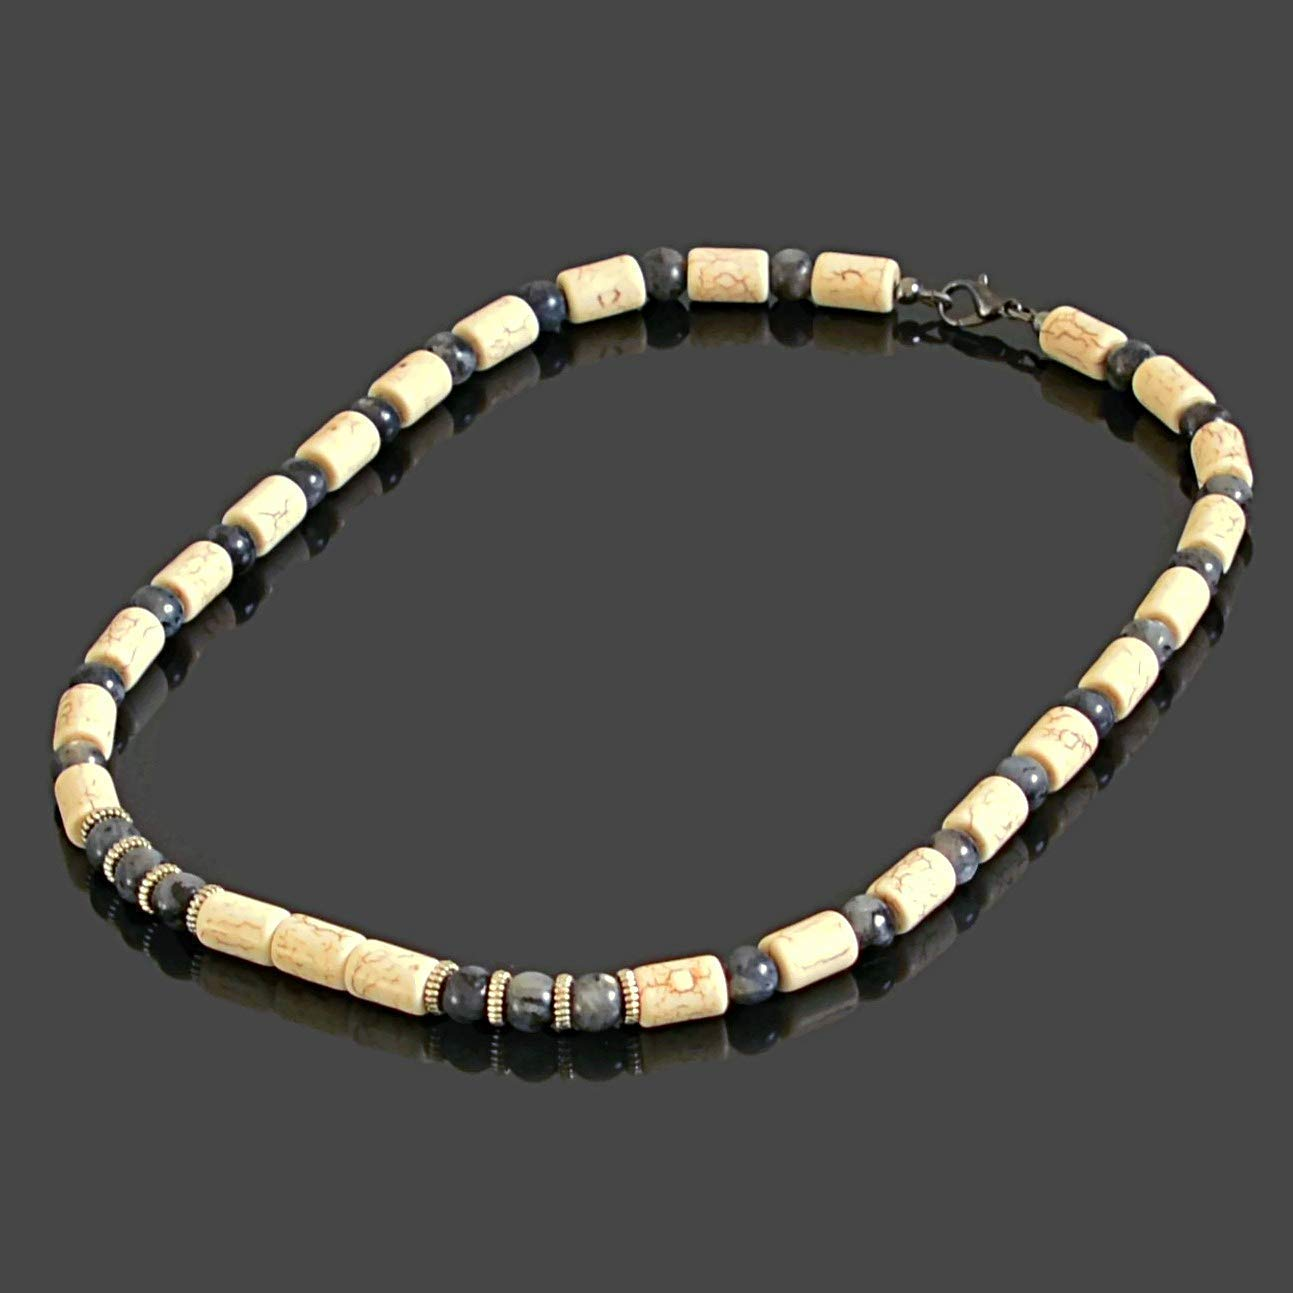 Native American Inspired Tribal Men's Necklace featuring White Howlite and Labradorite Choker Necklace for Men Handmade Jewelry